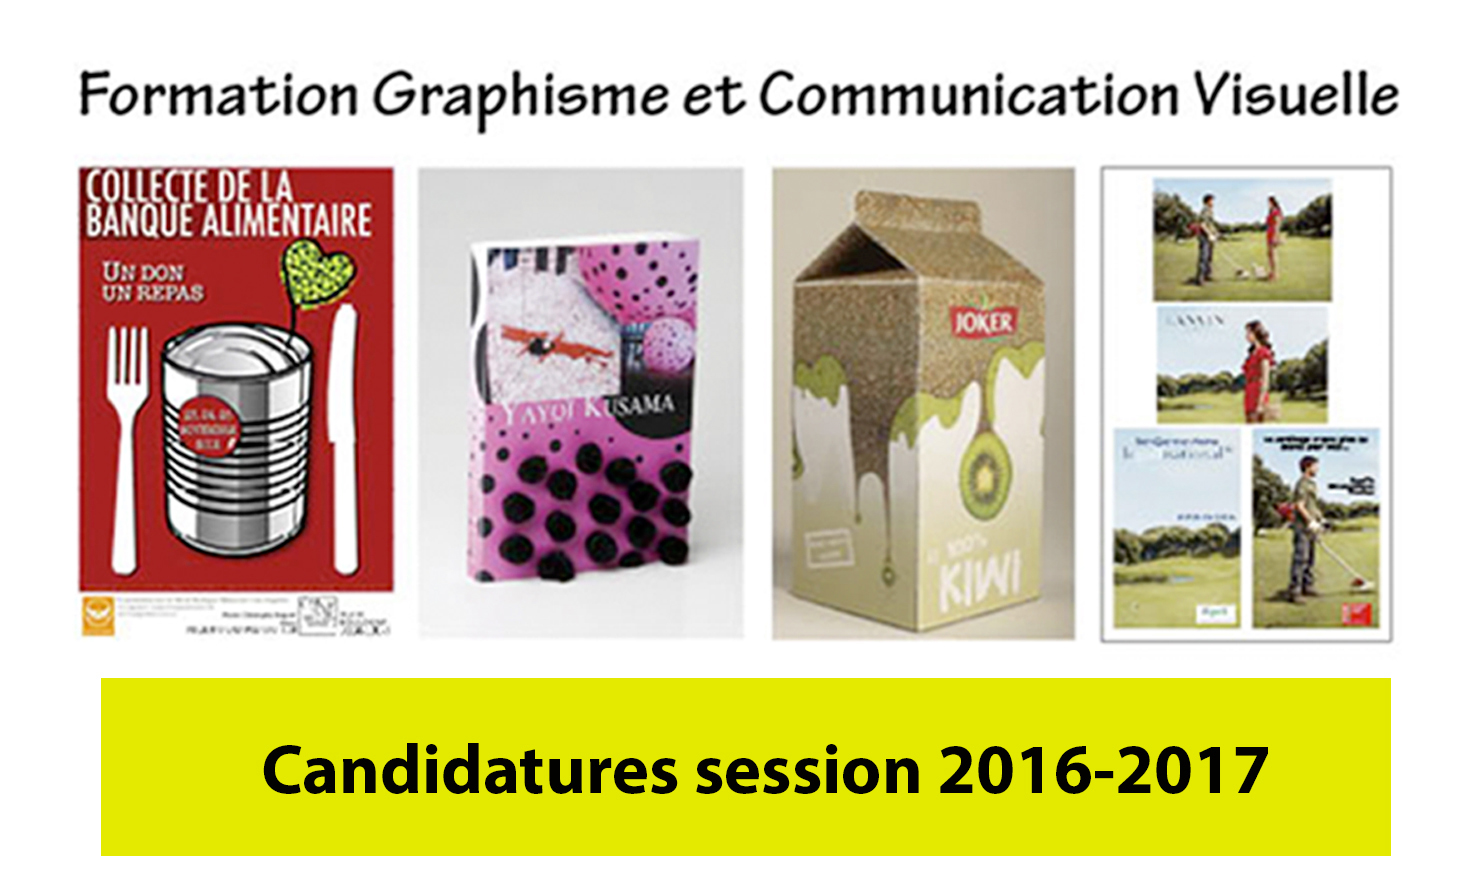 Candidatures-session.jpg